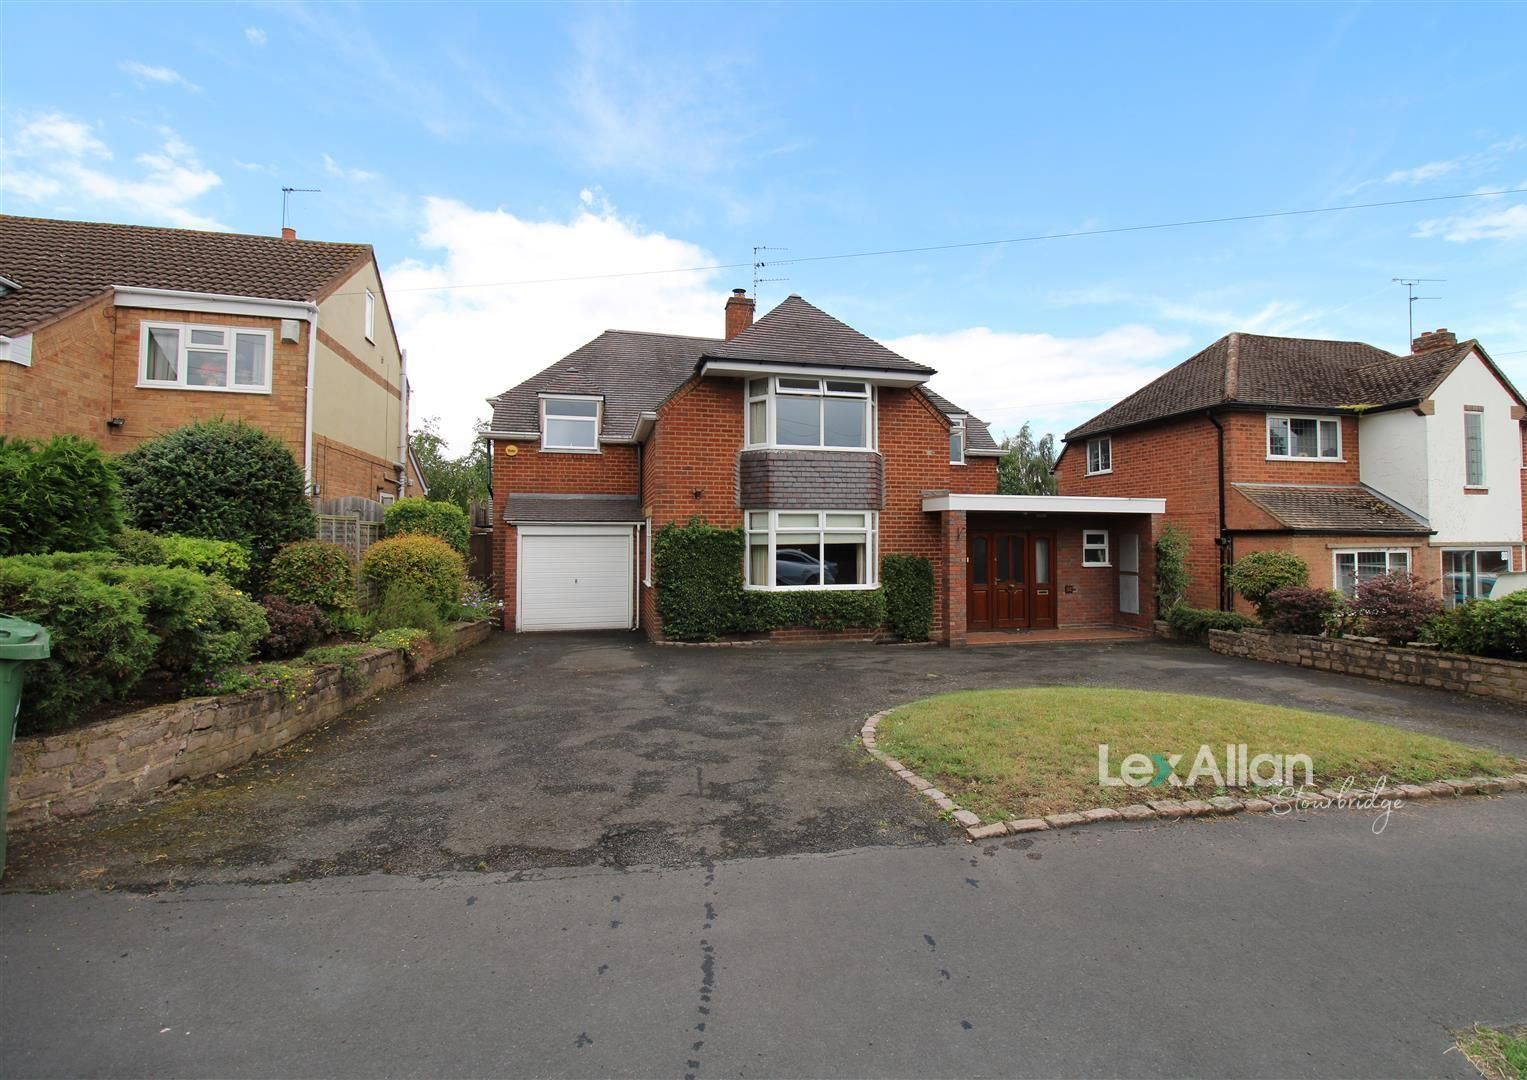 3 bed detached for sale in Norton  - Property Image 1